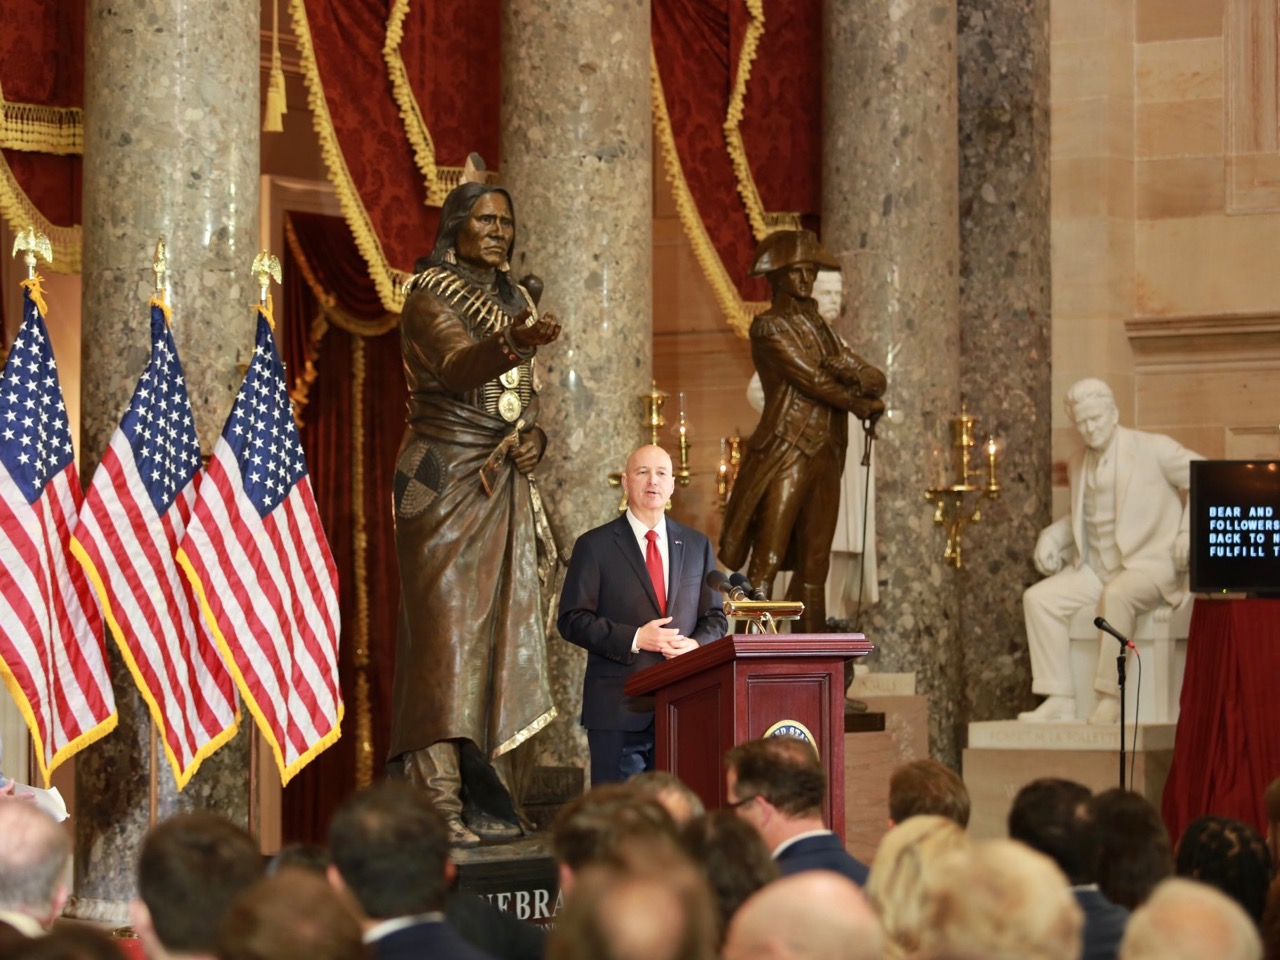 Gov. Pete Ricketts: Standing tall for justice in the US Capitol